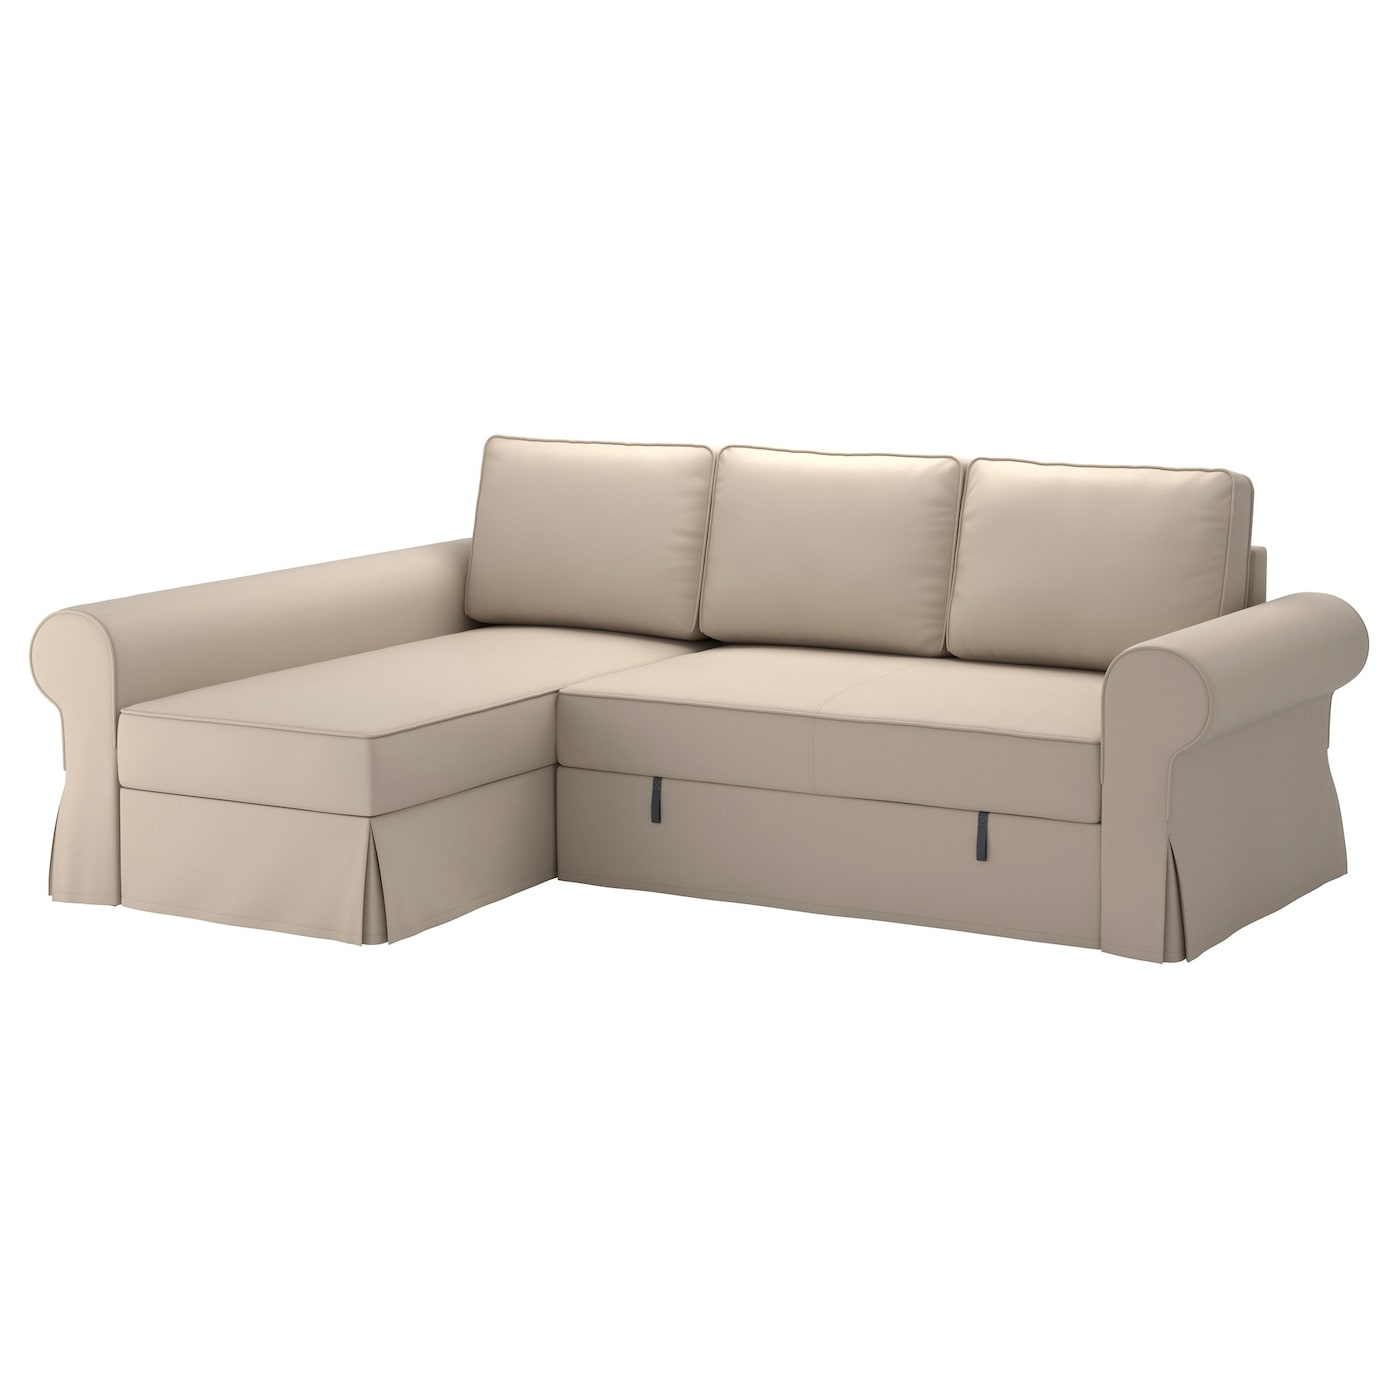 Backabro sofa bed with chaise longue ramna beige ikea for Sofa bed zuza